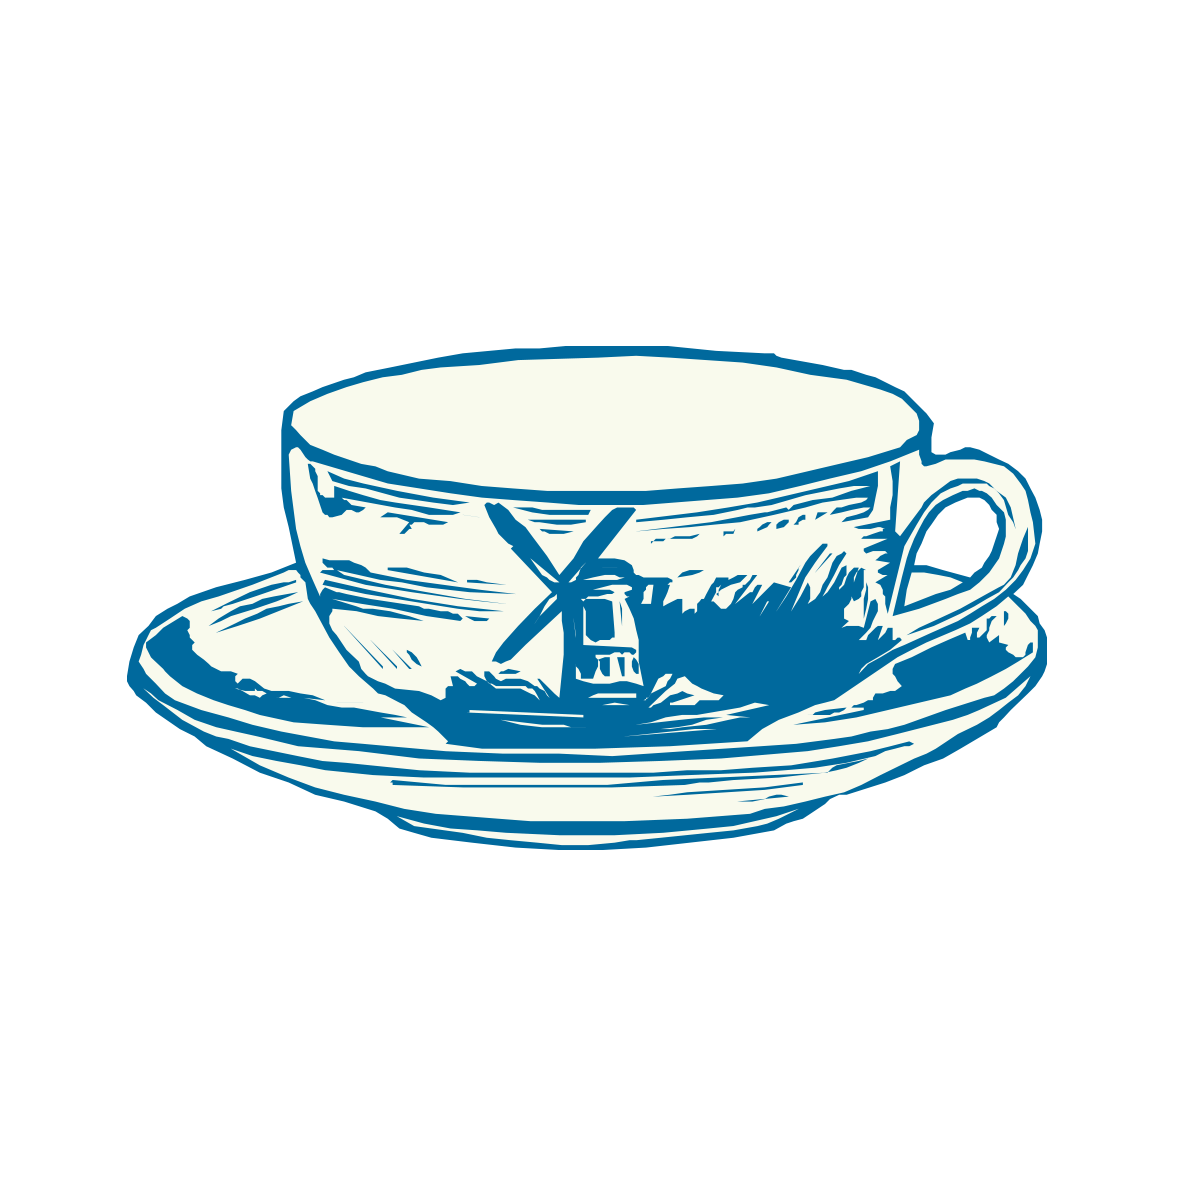 png royalty free Coffee cup clip art. Vintage teacup clipart